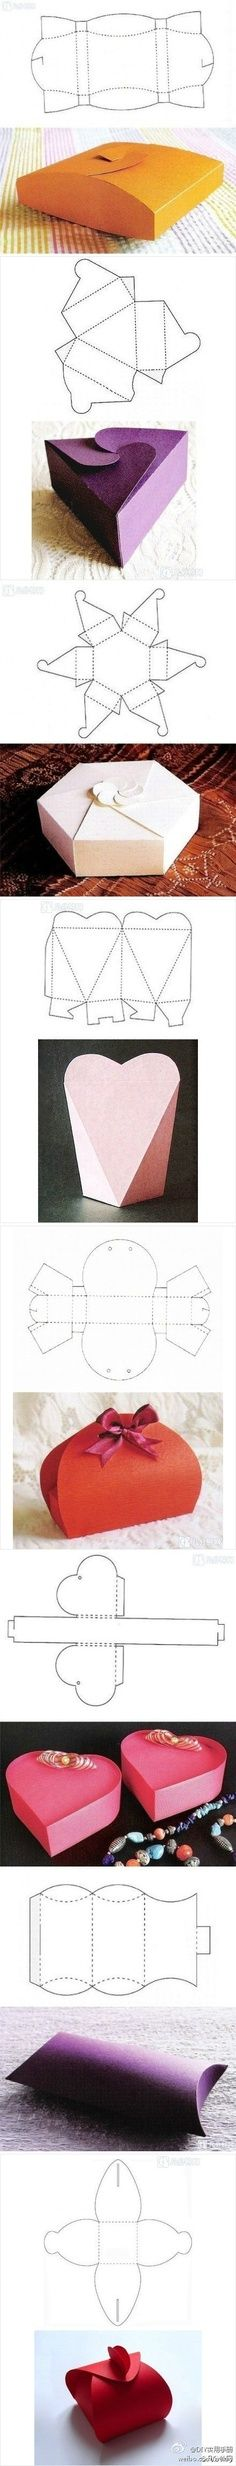 New origami box template patterns ideas Diy Paper, Paper Crafting, Paper Art, Paper Gifts, Diy Gift Box, Diy Box, Gift Boxes, Favour Boxes, Candy Boxes